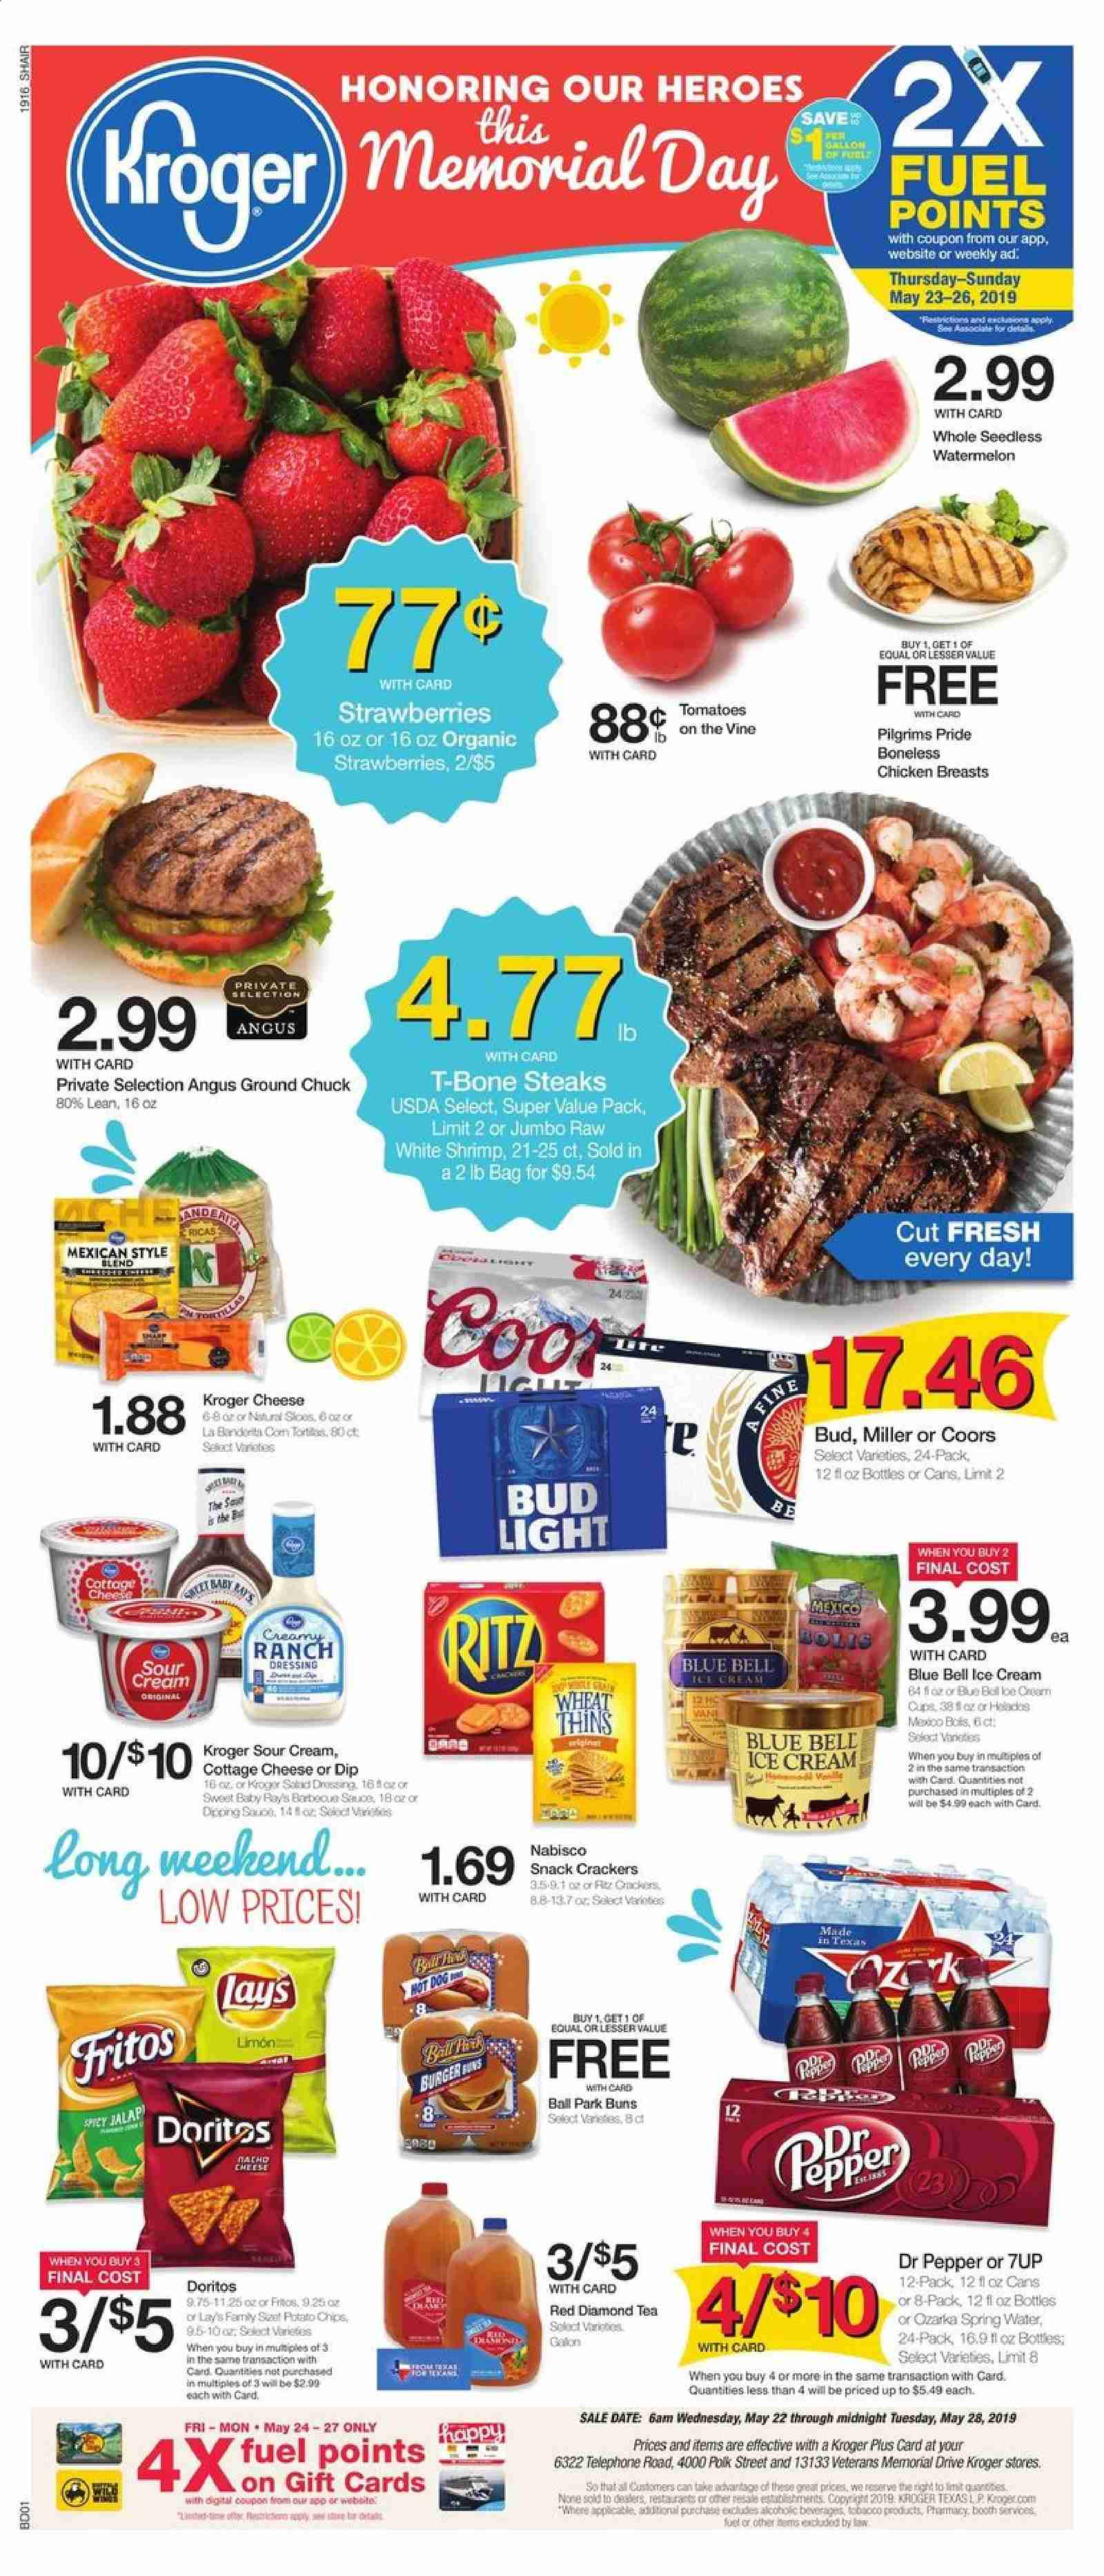 Kroger Flyer - 05.22.2019 - 05.28.2019 - Sales products - bag, cottage cheese, crackers, doritos, ground chuck, shrimp, sour cream, spring water, strawberries, t-bone steak, tea, watermelon, ice cream, polk, cheese, pepper, snack, bud light, ball, miller, coors, dr. pepper, cream. Page 1.